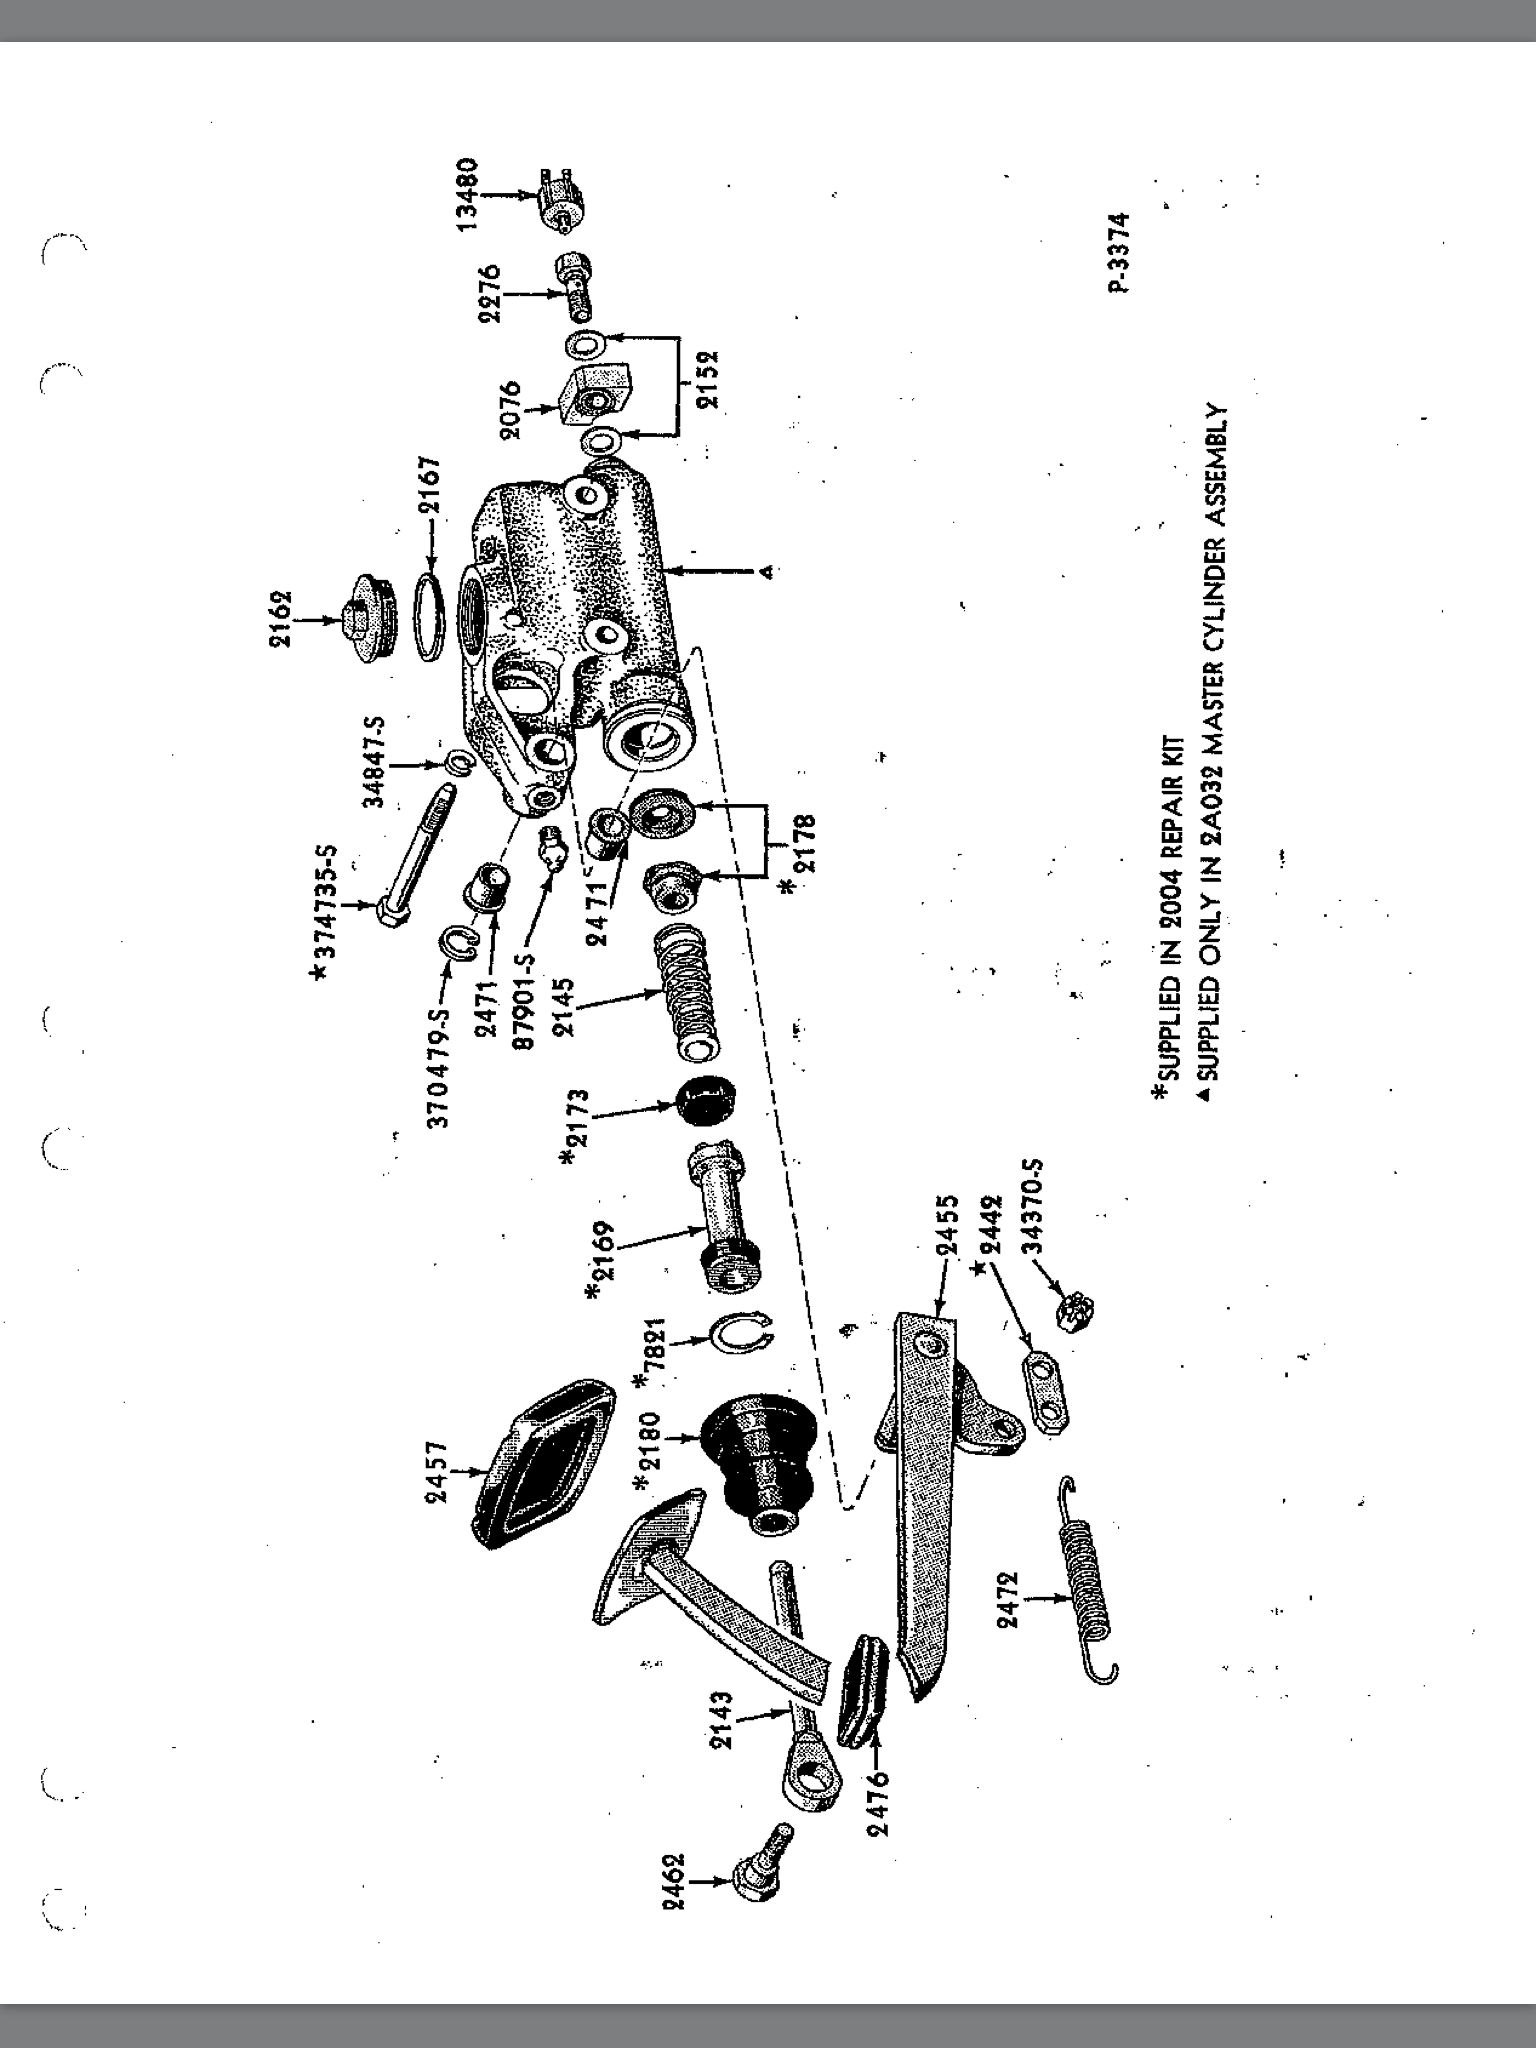 Master cylinder exploded view Exploded View, Ford Trucks, Diagram, Manual,  Textbook,